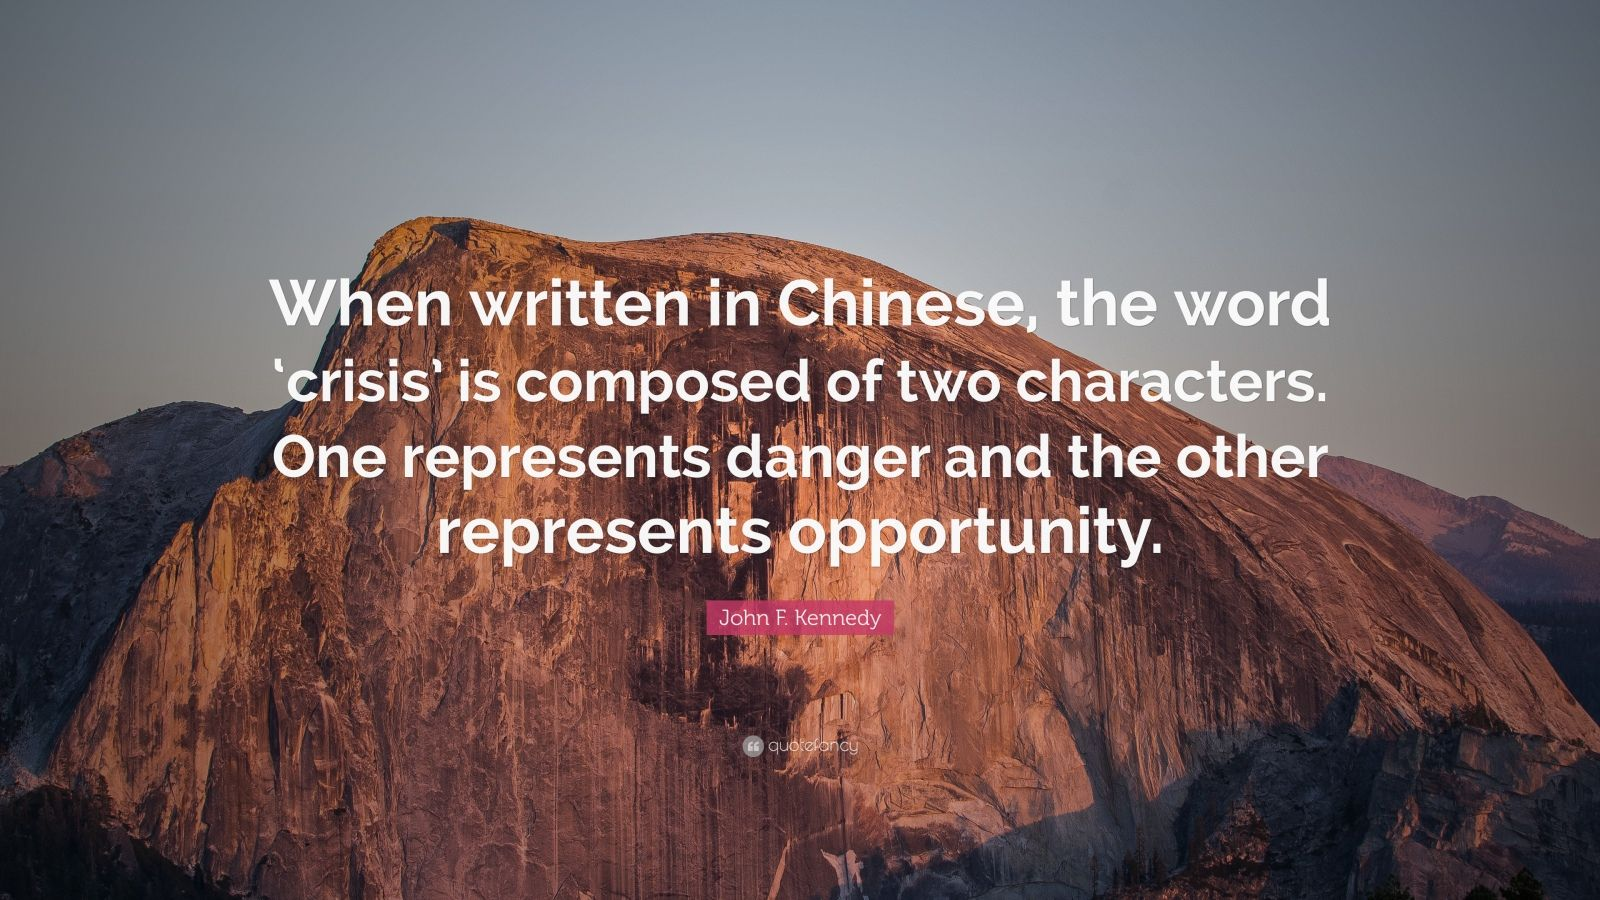 John F. Kennedy Quote: When written in Chinese, the word